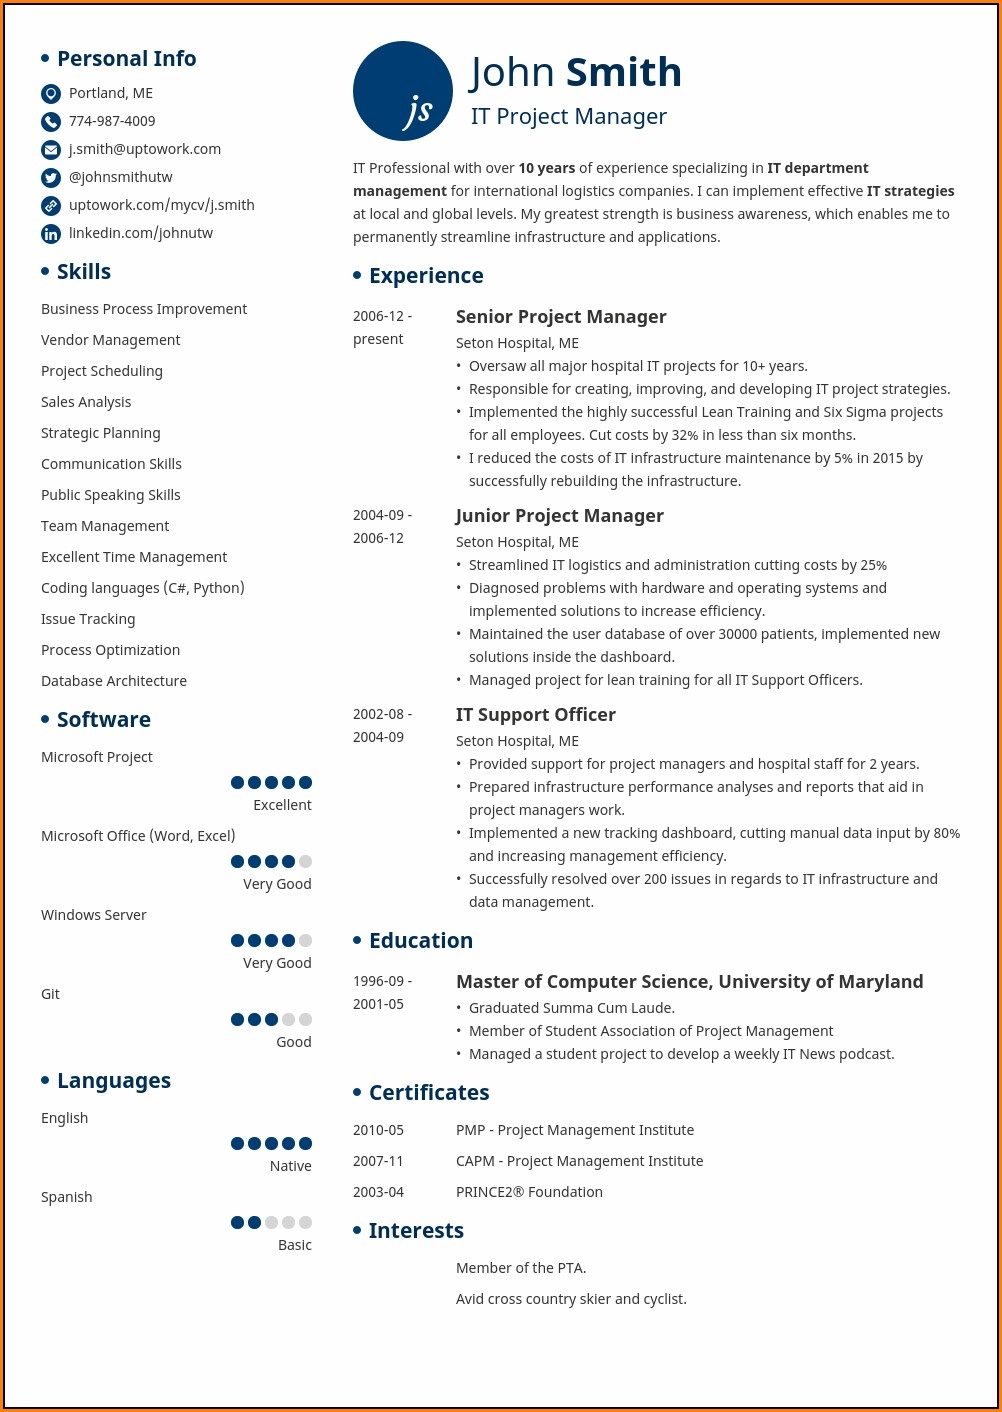 Resume Maker Professional 11.0